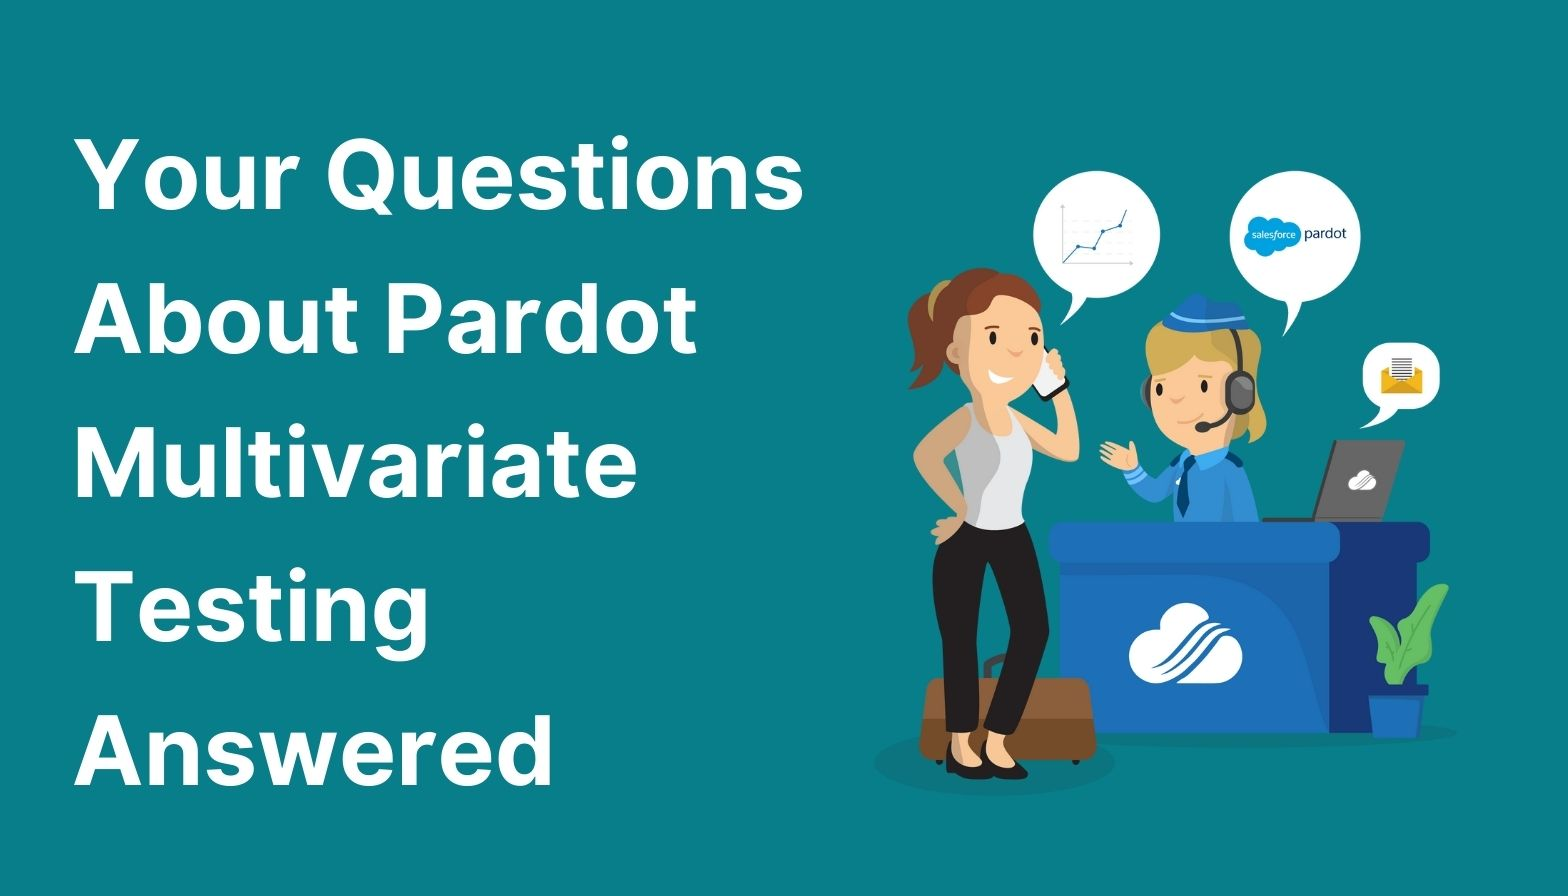 Feature image: Your questions about Pardot multivariate testing answered